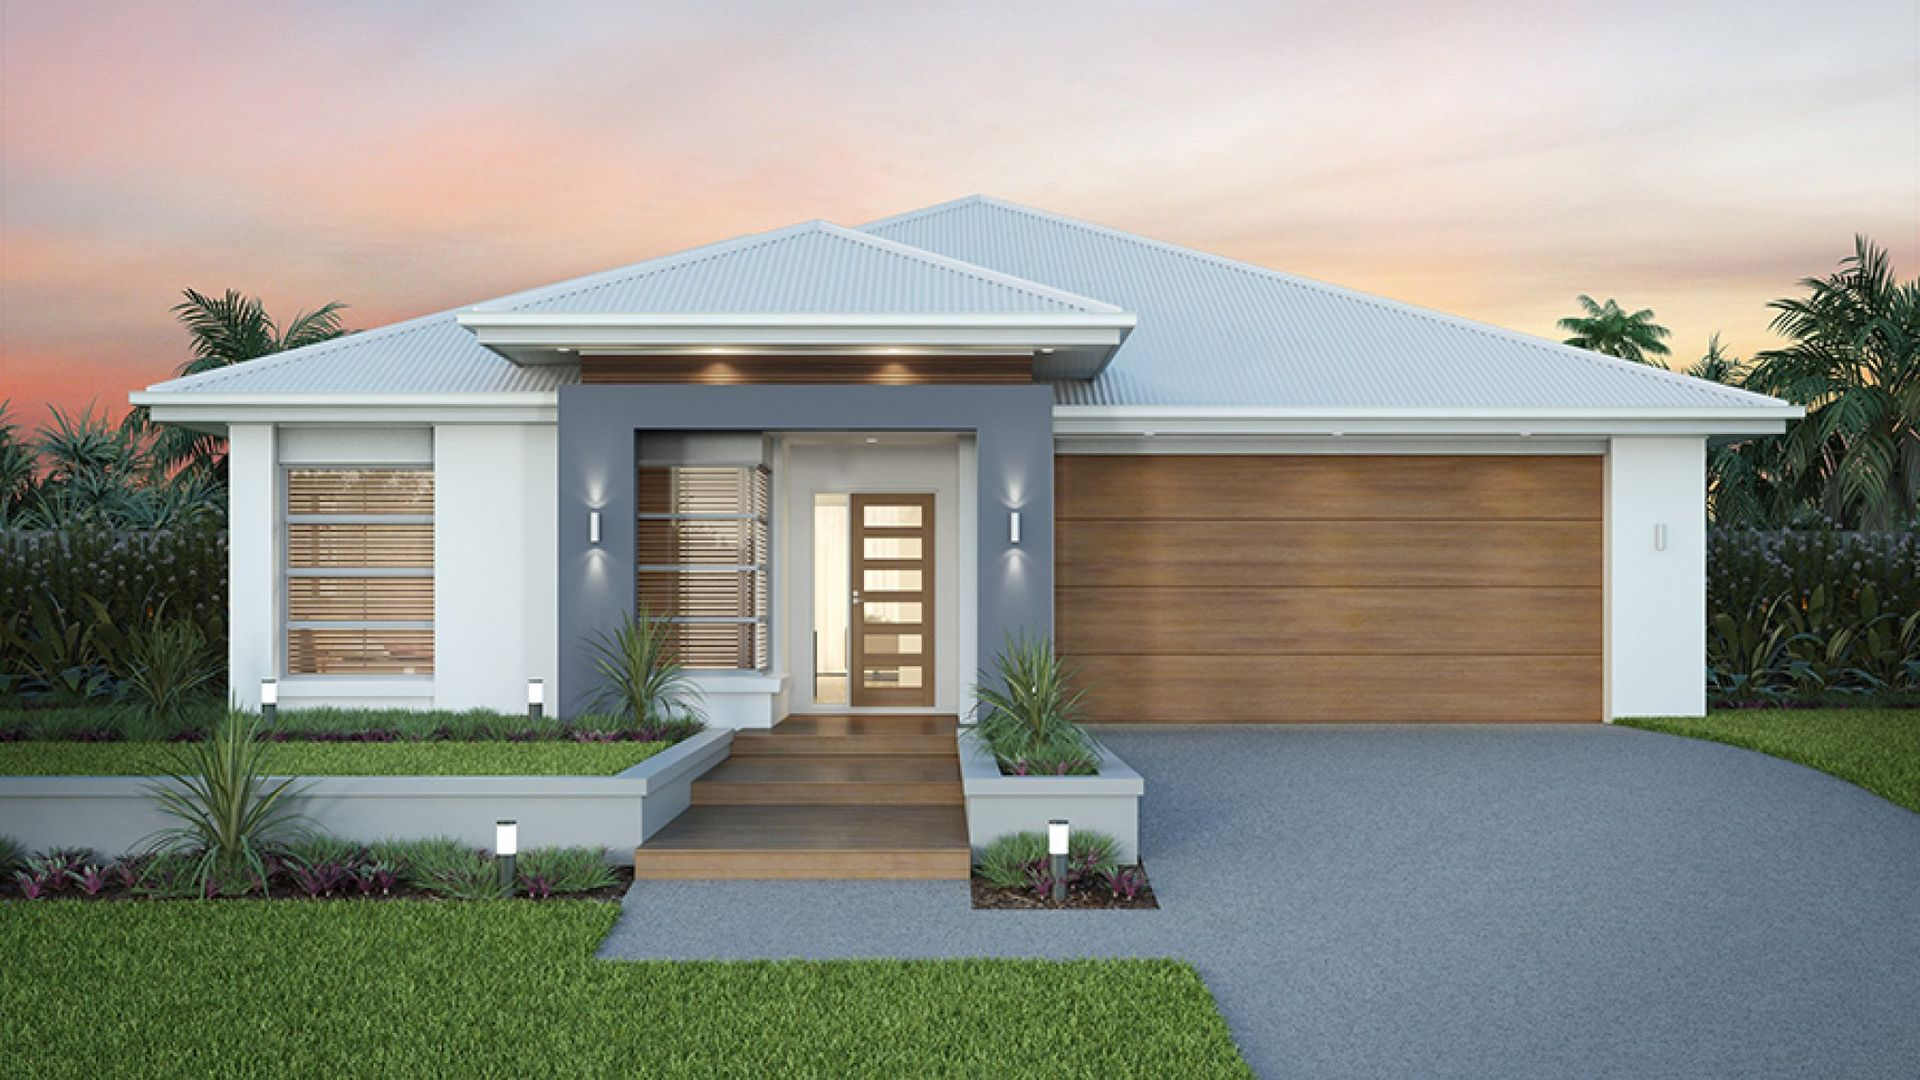 Lot 5134 Major Drive, Rochedale QLD 4123, Image 2